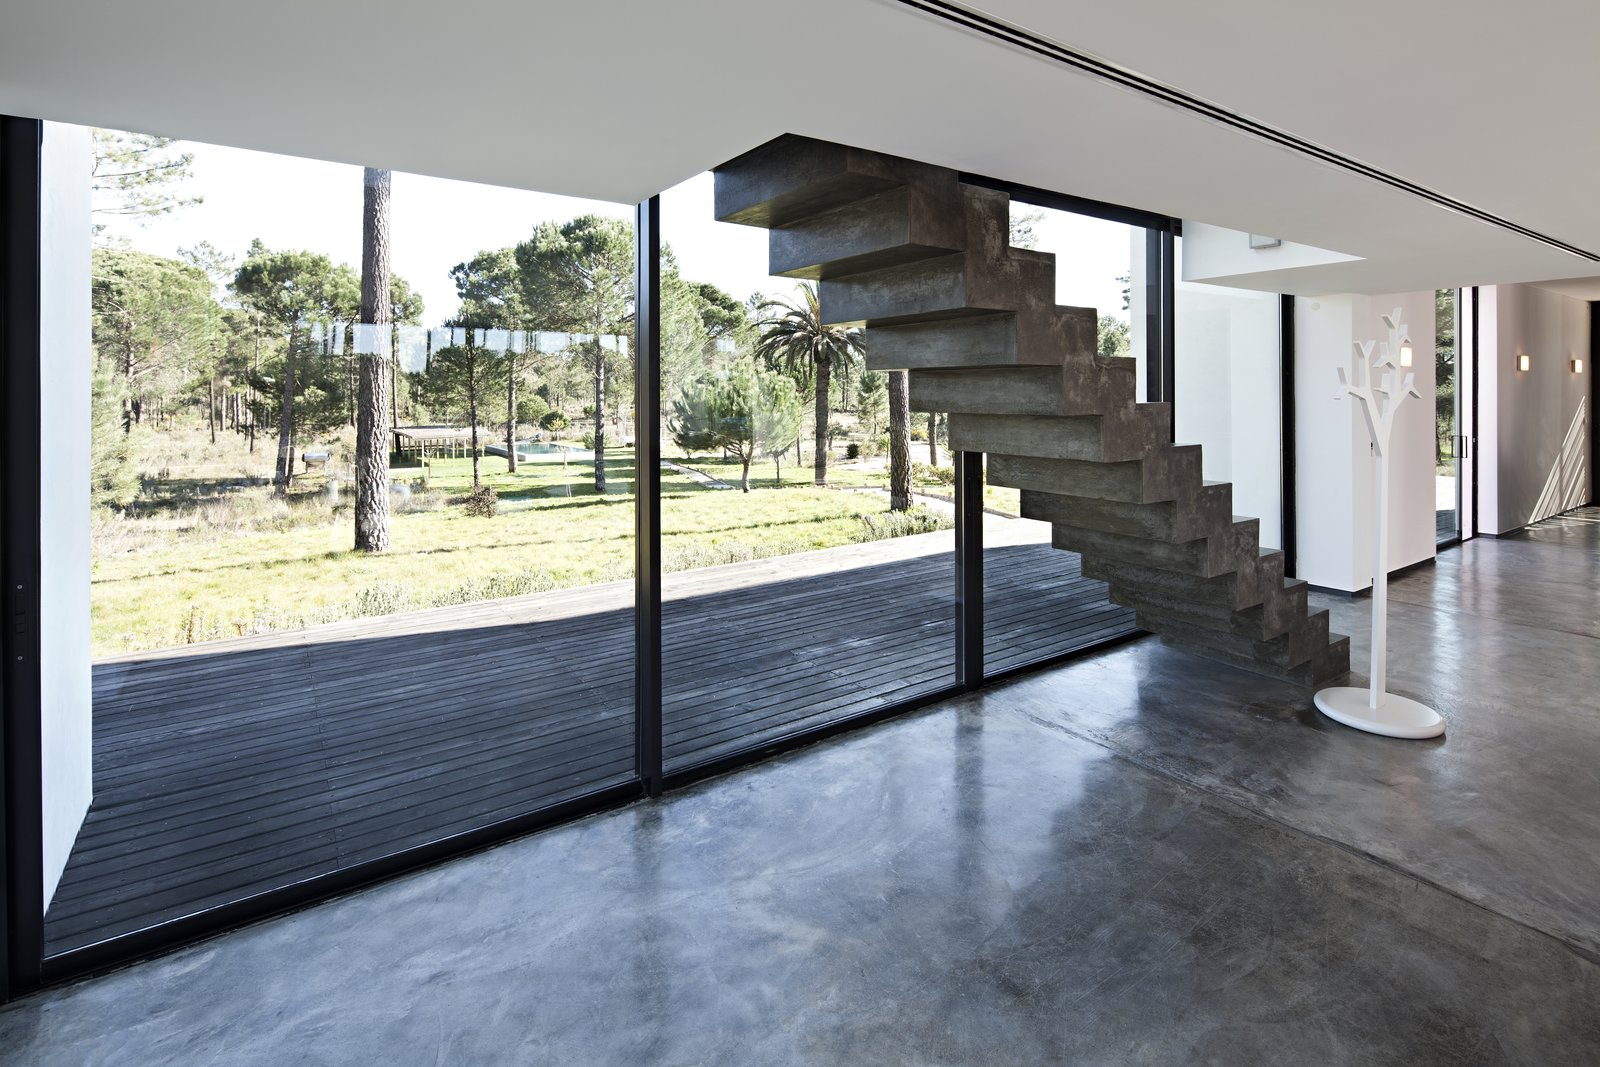 Staircase and Concrete Tread  Photo 11 of 15 in Escape to a Light-Filled, Beach-Meets-Forest Retreat in Portugal